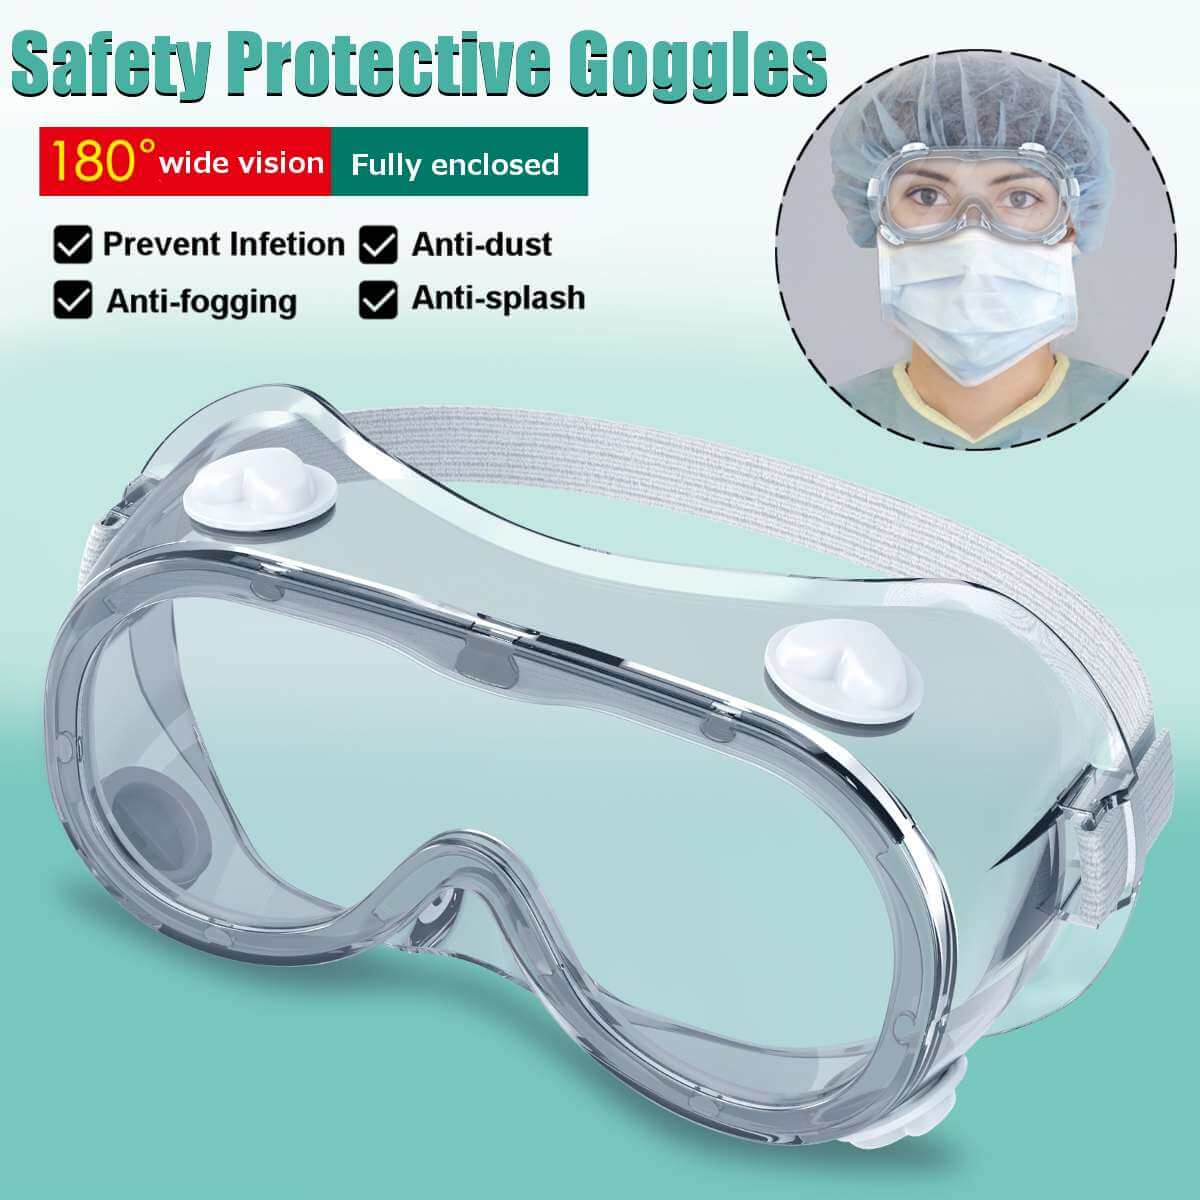 Medical goggles features overview